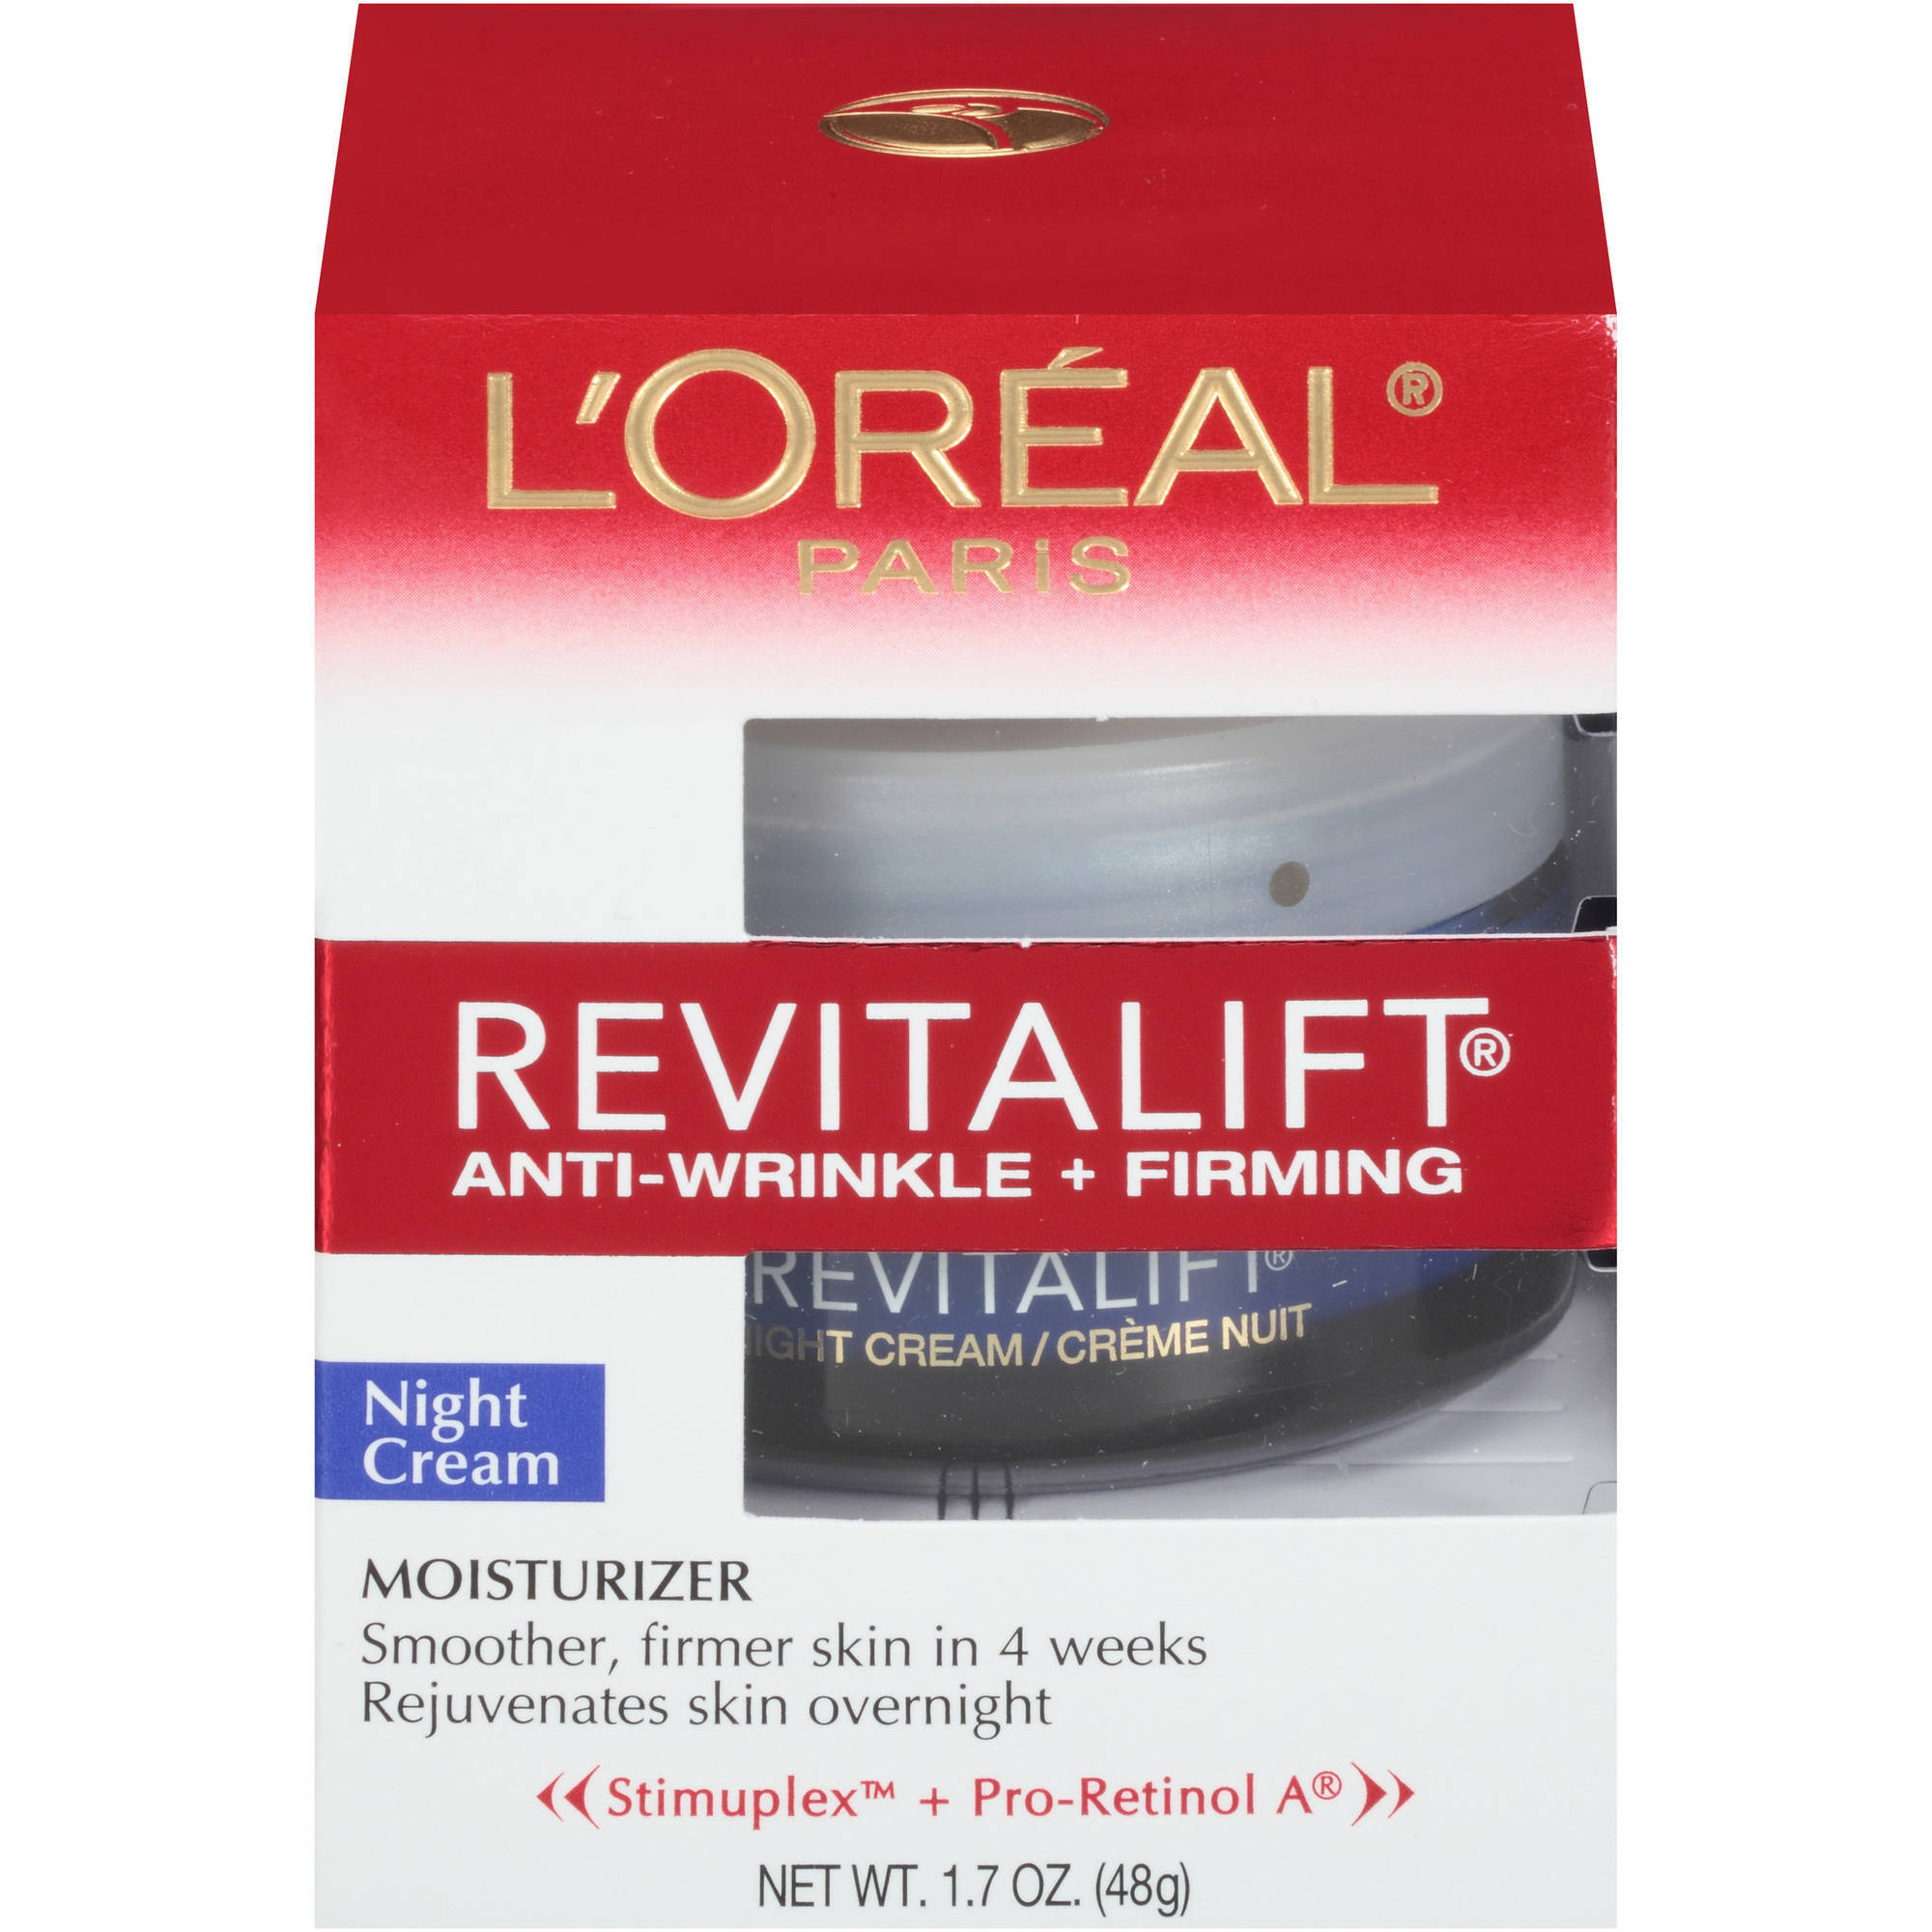 L'Oreal Paris RevitaLift Anti-Wrinkle & Firming Night Cream, 1.7 oz